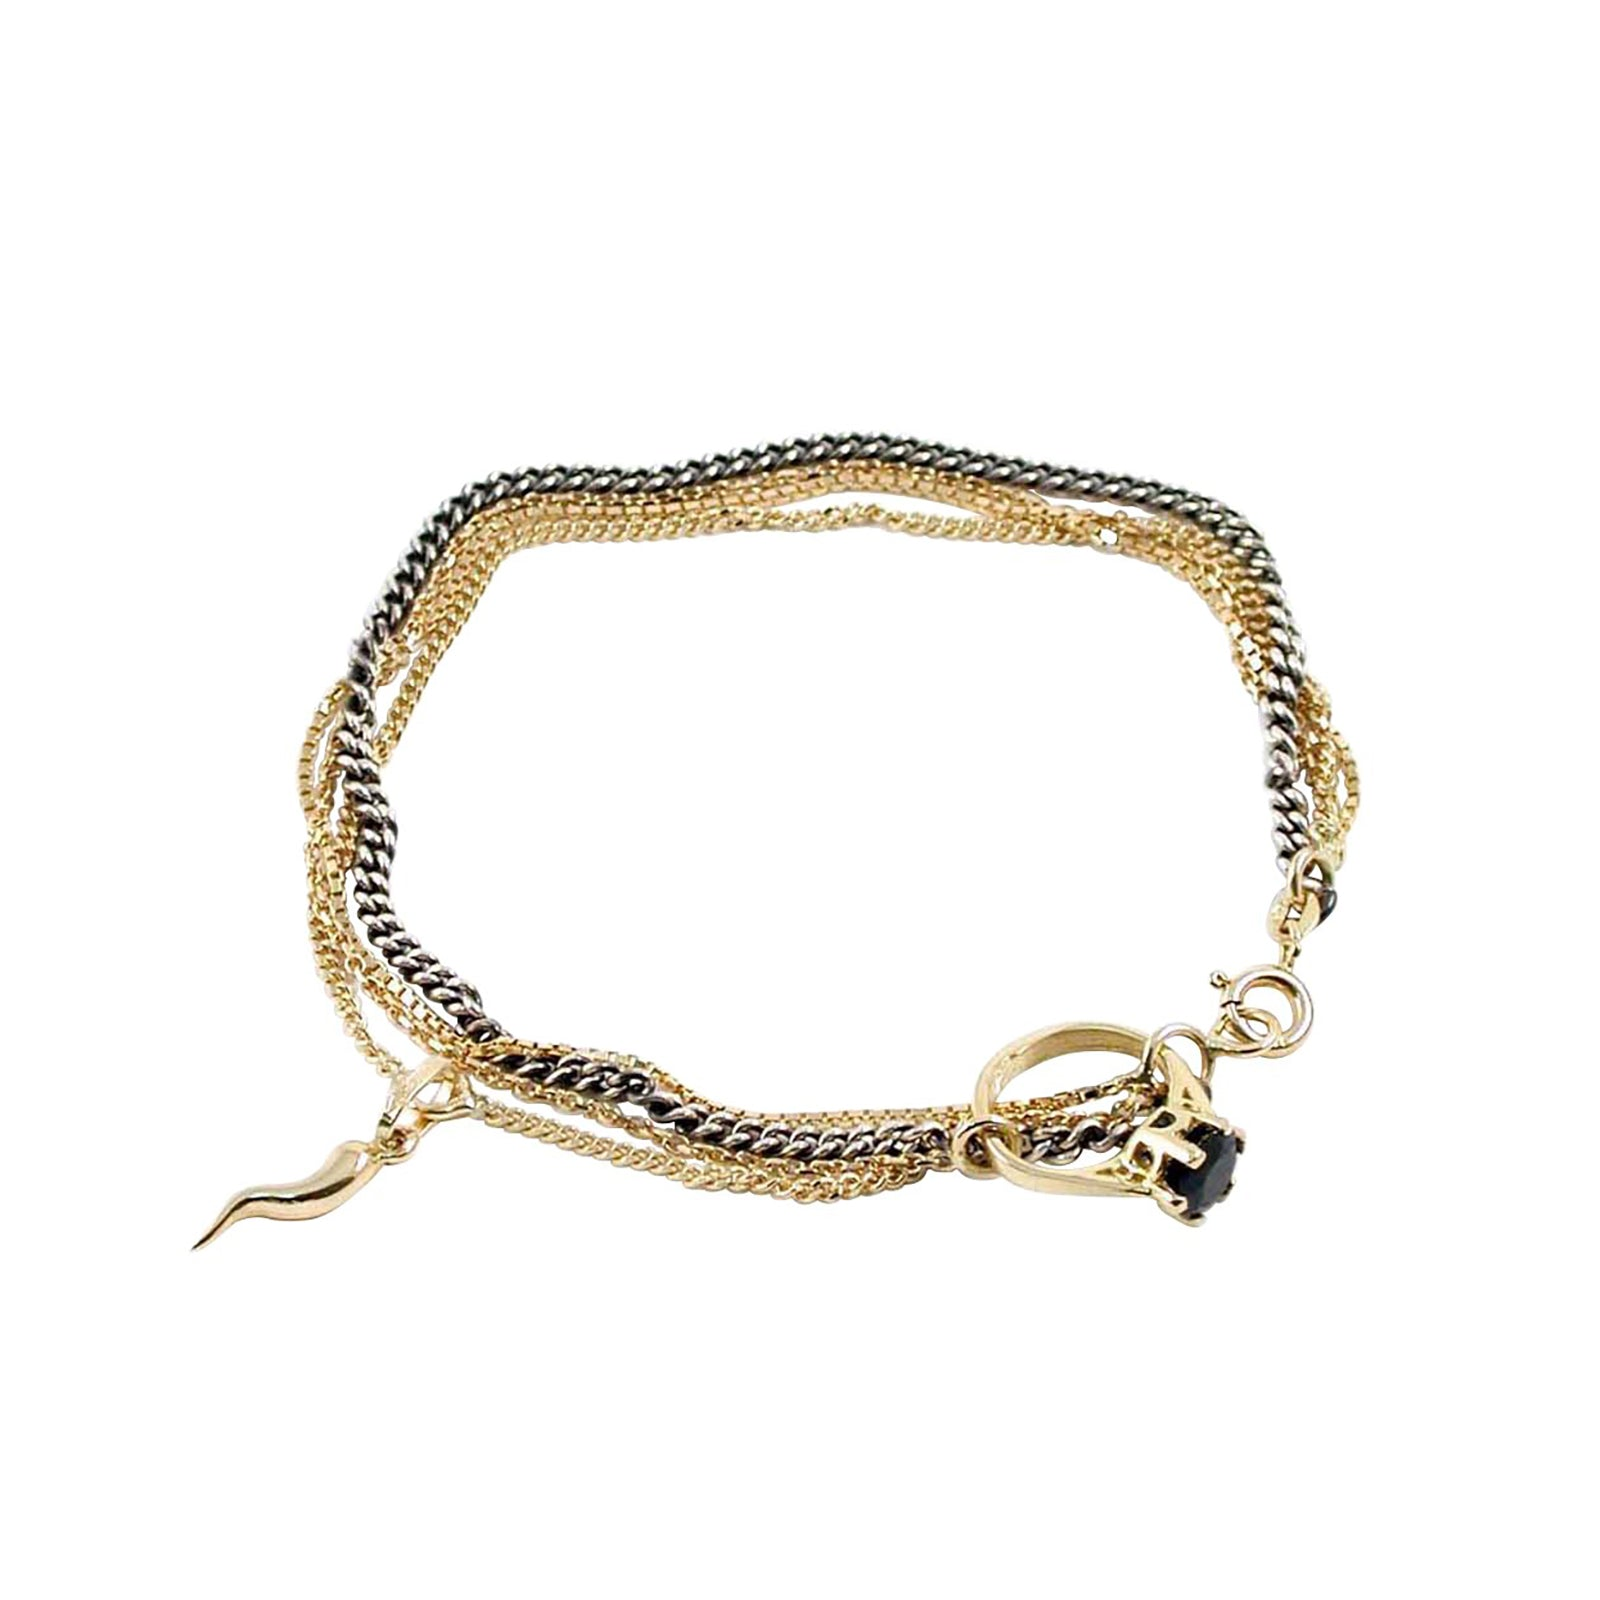 Bracelet with Horn and Charm - Ioselliani - Bracelets | Broken English Jewelry